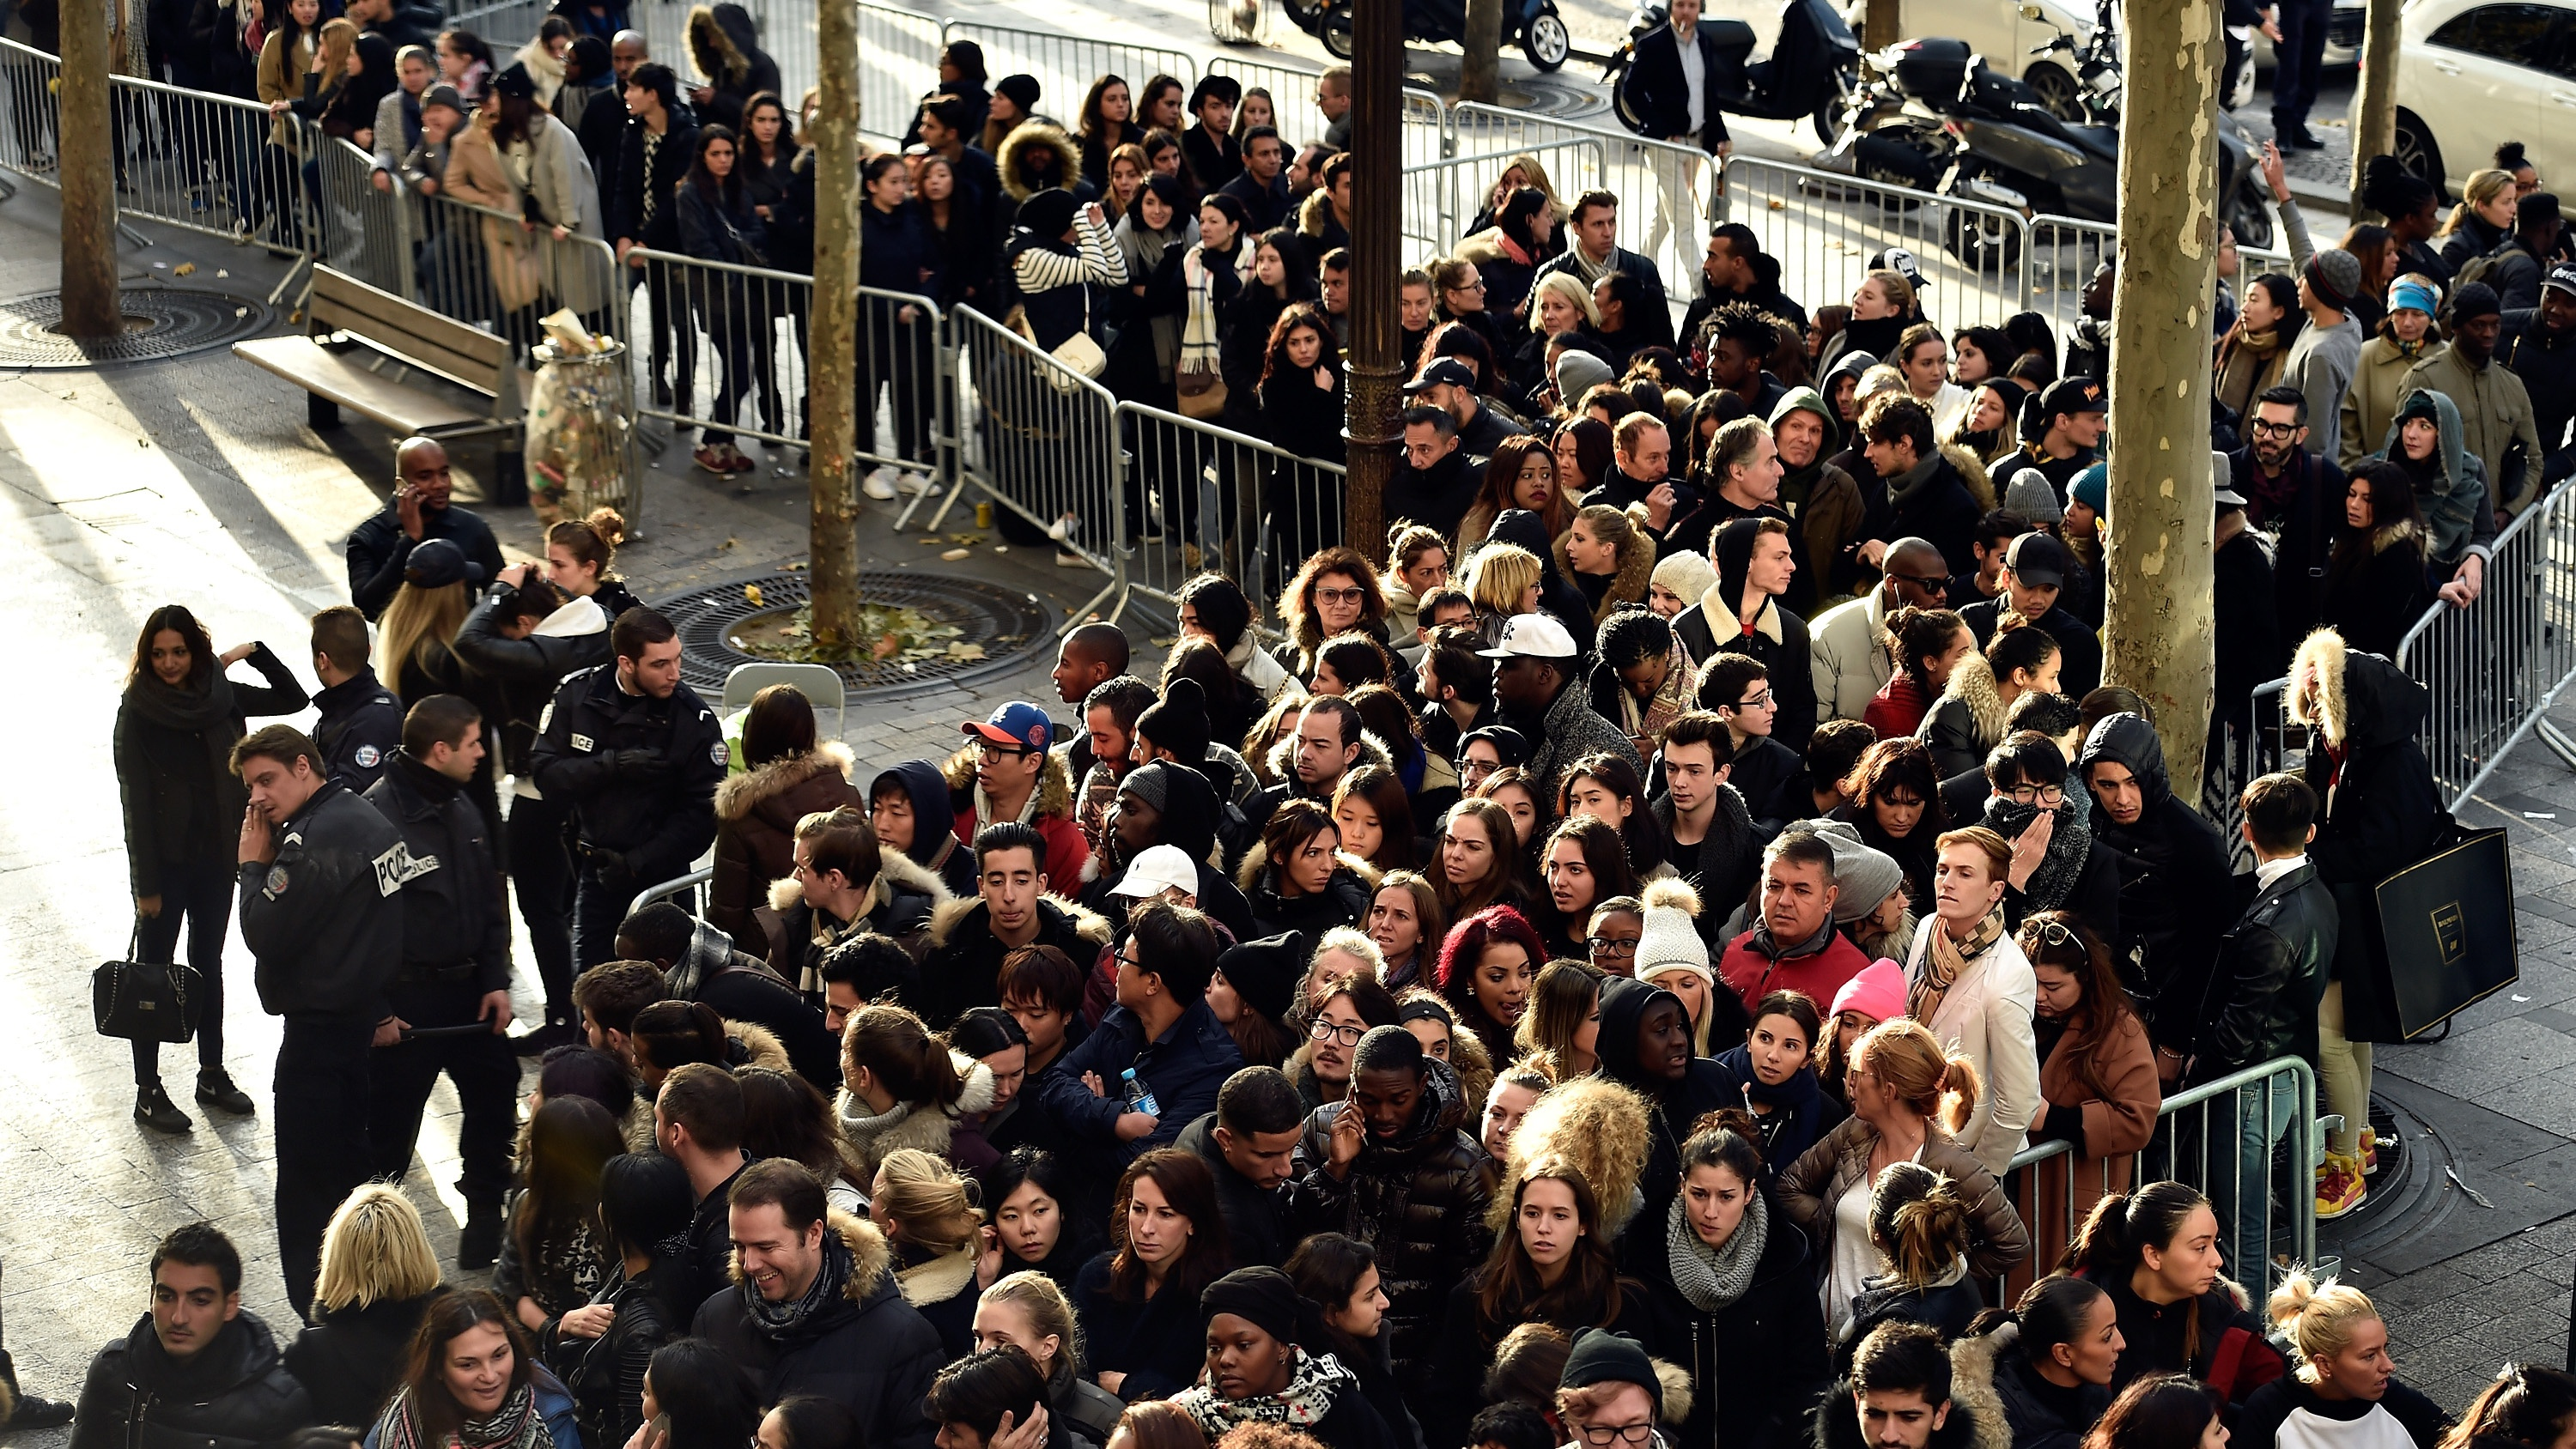 People wait to enter H&M before the Balmain X H&M Collection Launch at H&M Champs Elysees on November 5, 2015 in Paris, France.